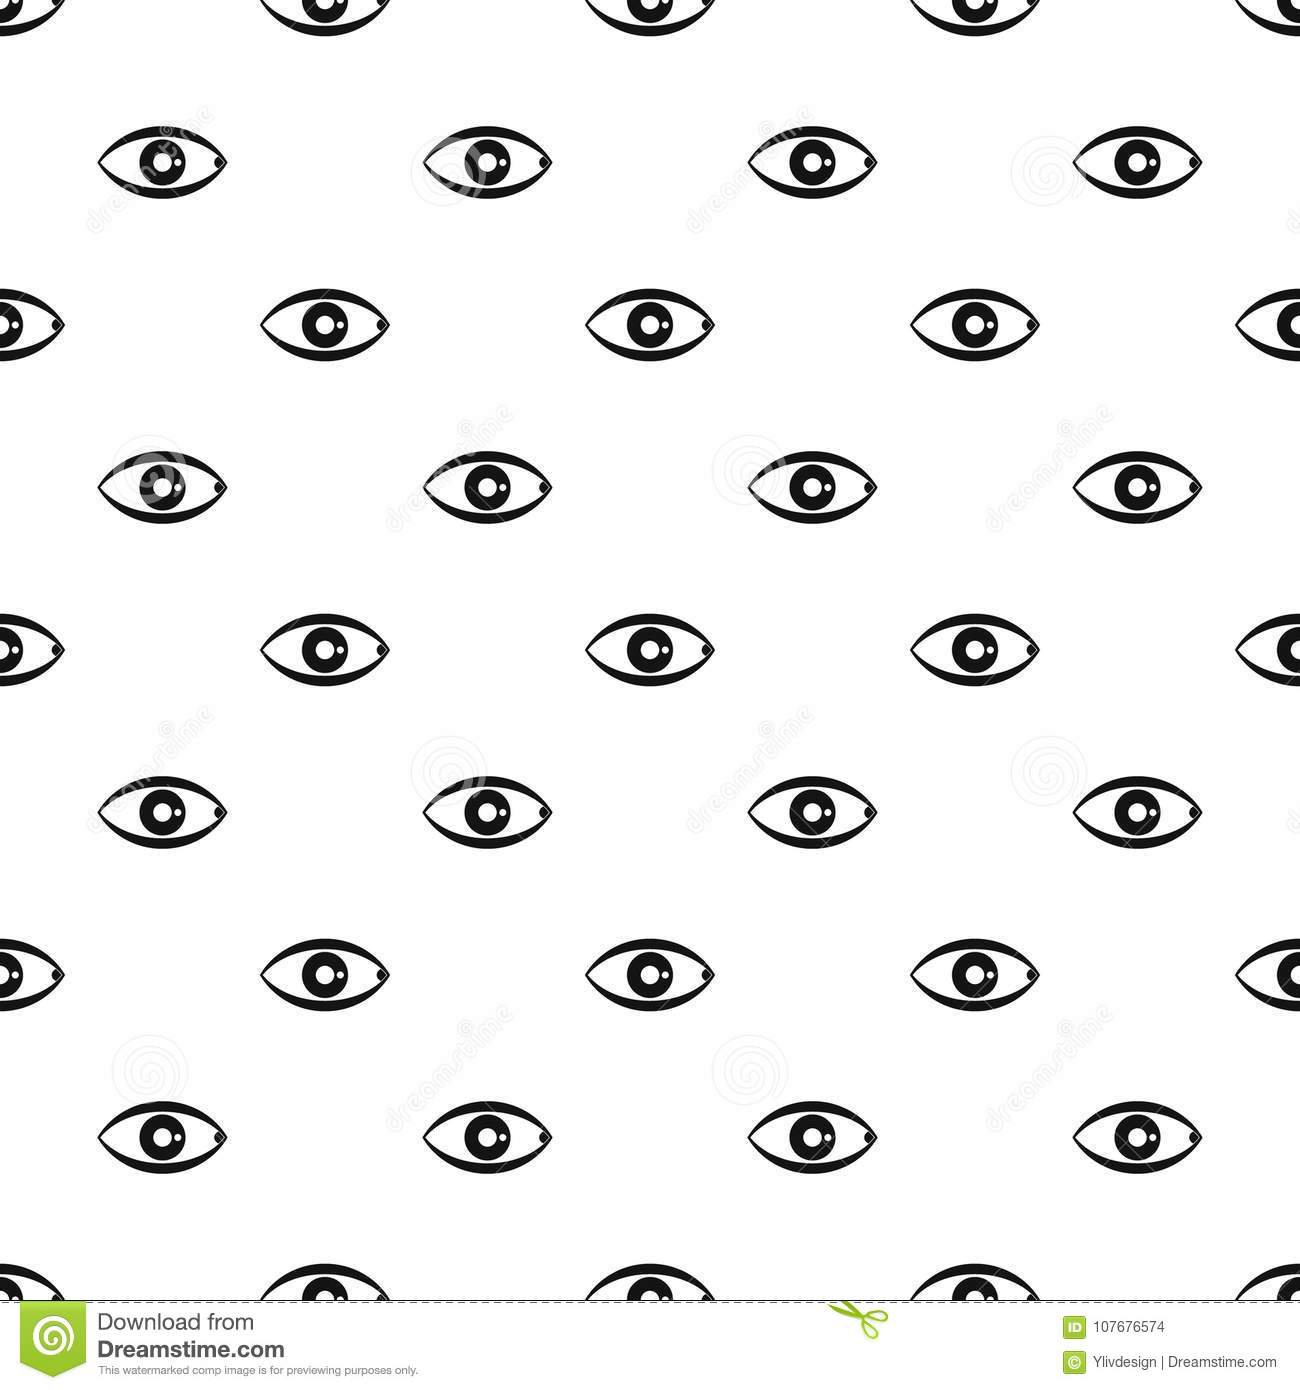 human eye pattern vector stock vector. illustration of abstract